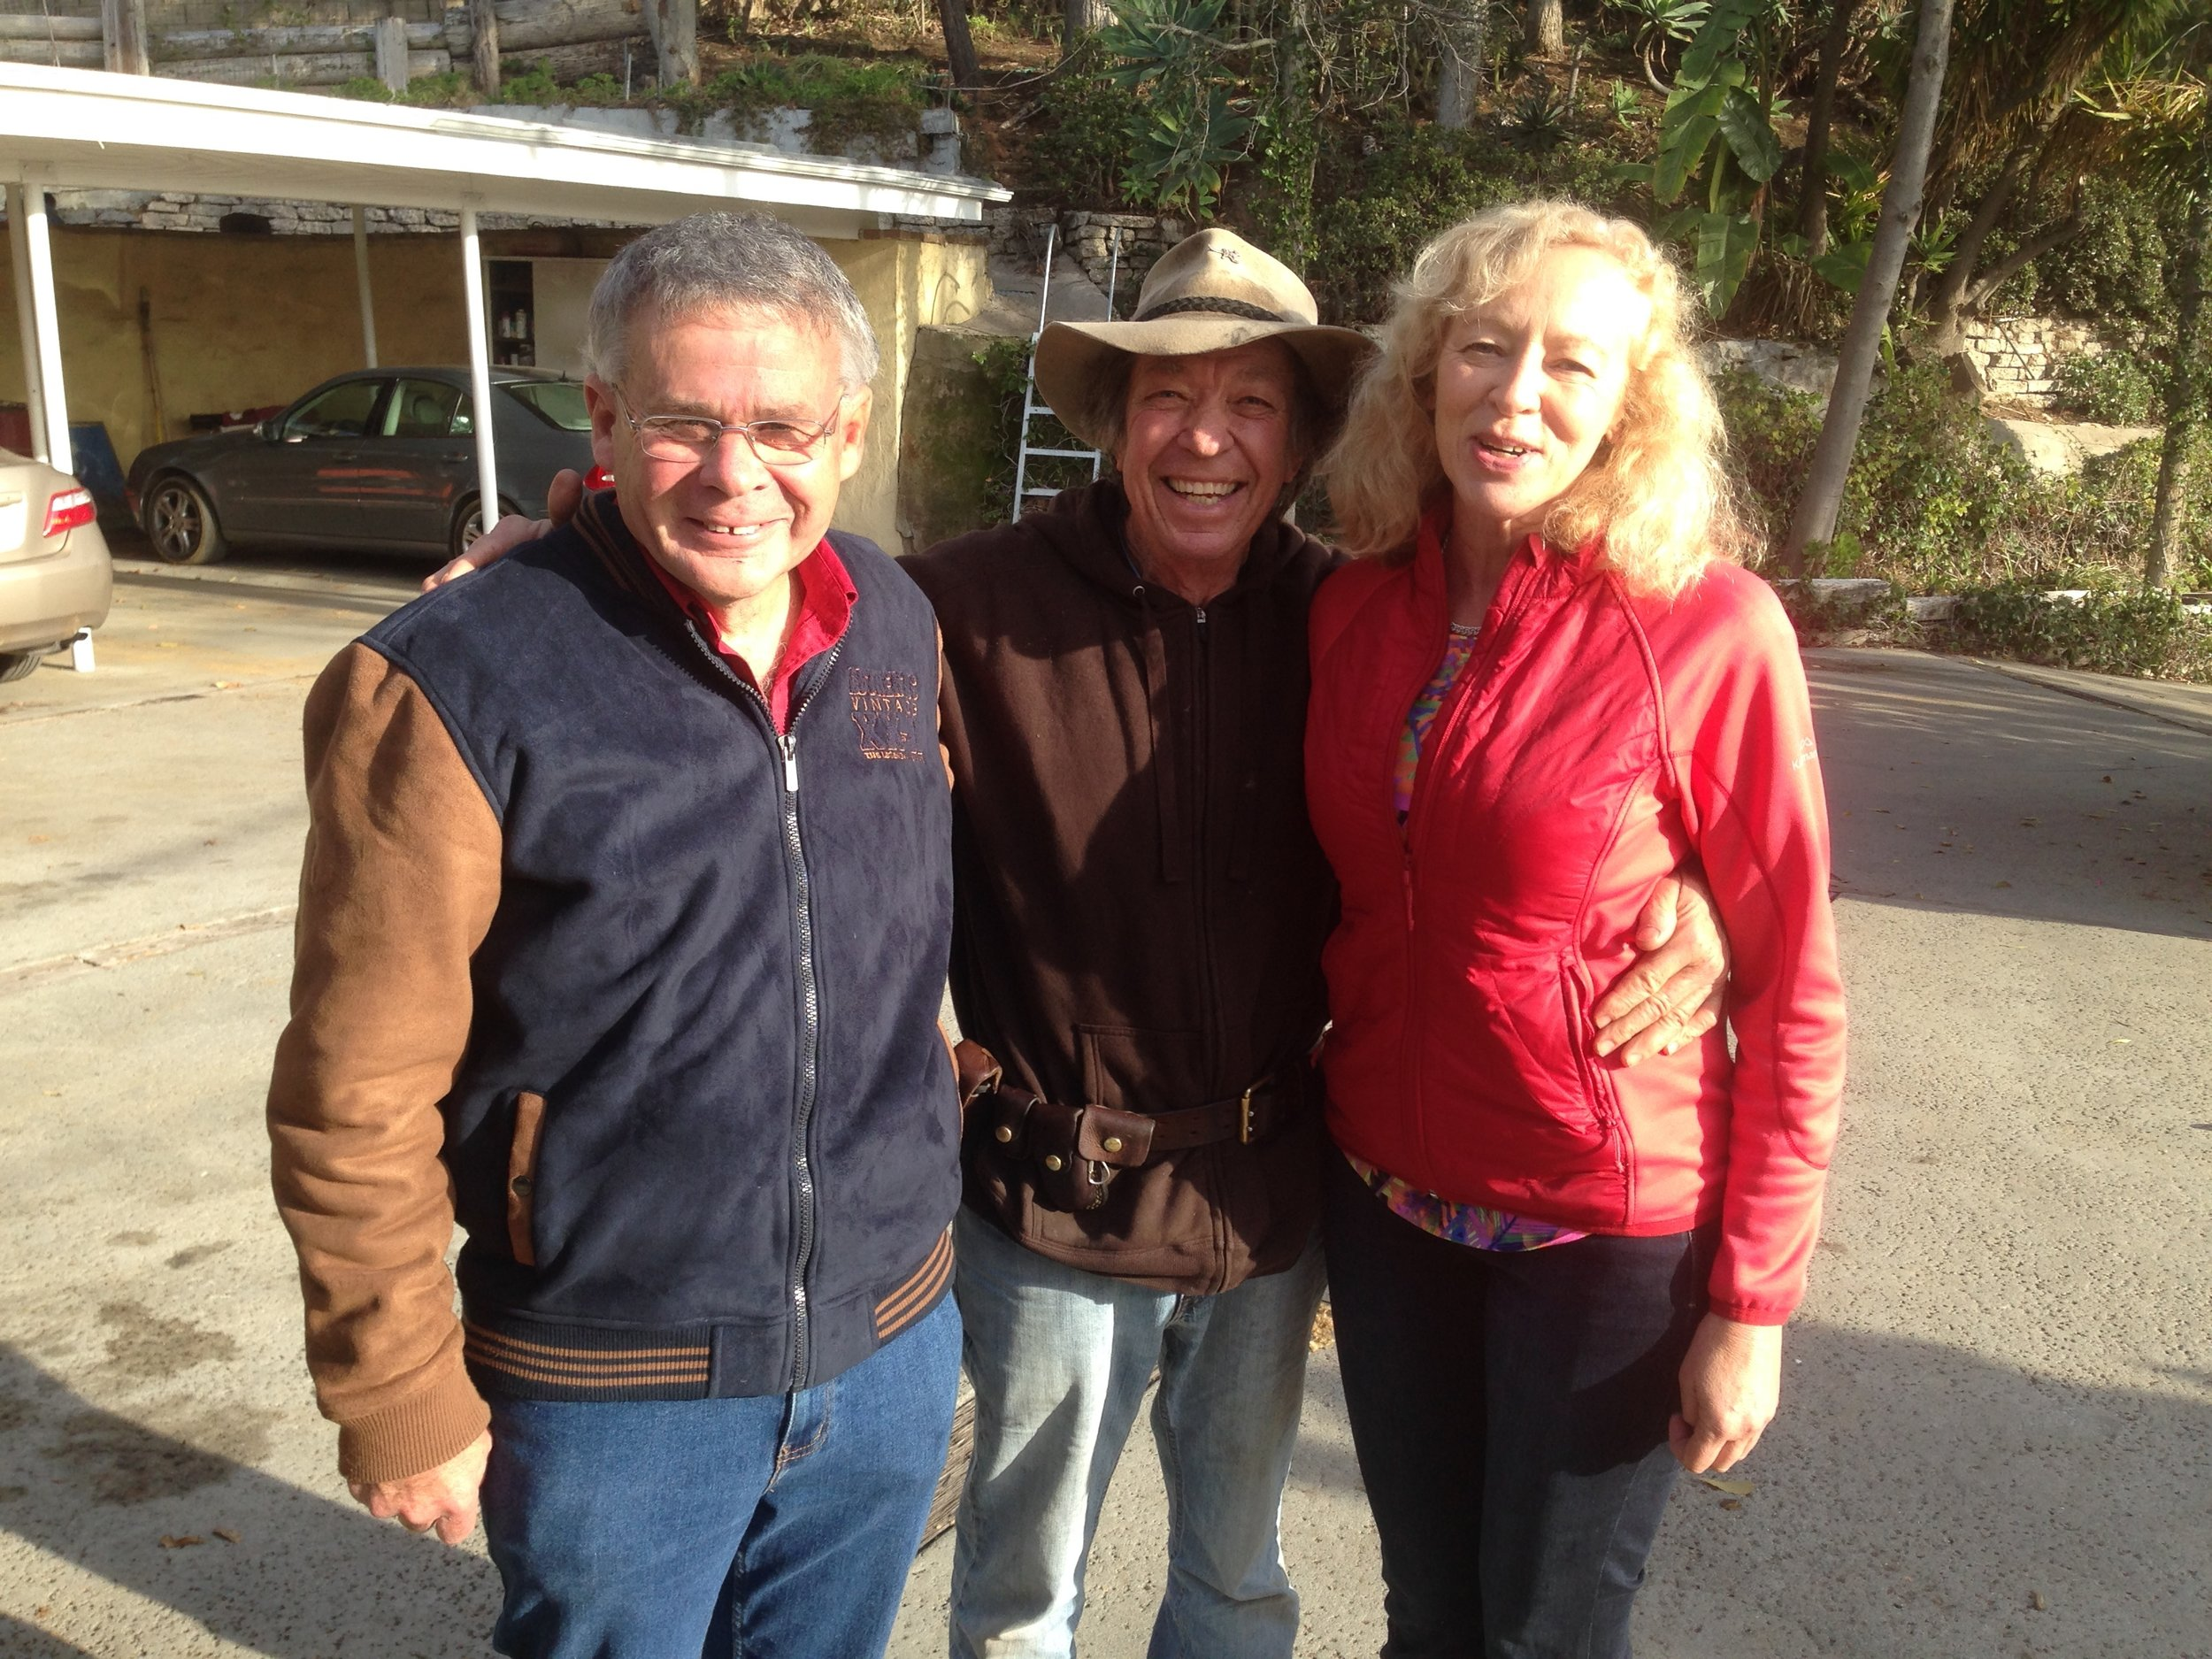 """COLIN VISITS WITH NEIL AND HIS WIFE CHRIS, ON COLIN'S RANCH IN MALIBU . THEY ALL MET 30 YEARS AGO WHEN COLIN FIRST STARTED PESTERING NEIL ABOUT WRITING A BOOK. COLIN DIDN'T BUY NEIL'S EXCUSE THAT HE WAS NOT A WRITER. AFTER WORKING AT IT FOR A COUPLE OF YEARS, NEIL DISCOVERED HE WAS INDEED A WRITER AND TODAY HE HAS A RUNAWAY BEST SELLER!! RECALLS CHRIS: """"COLIN, THERE WERE TIMES I WANTED TO KILL YOU! WRITING THIS BOOK WAS DRIVING US CRAZY. BUT NOW I JUST WANT TO HUG YOU FOR MAKING US DO IT. """""""